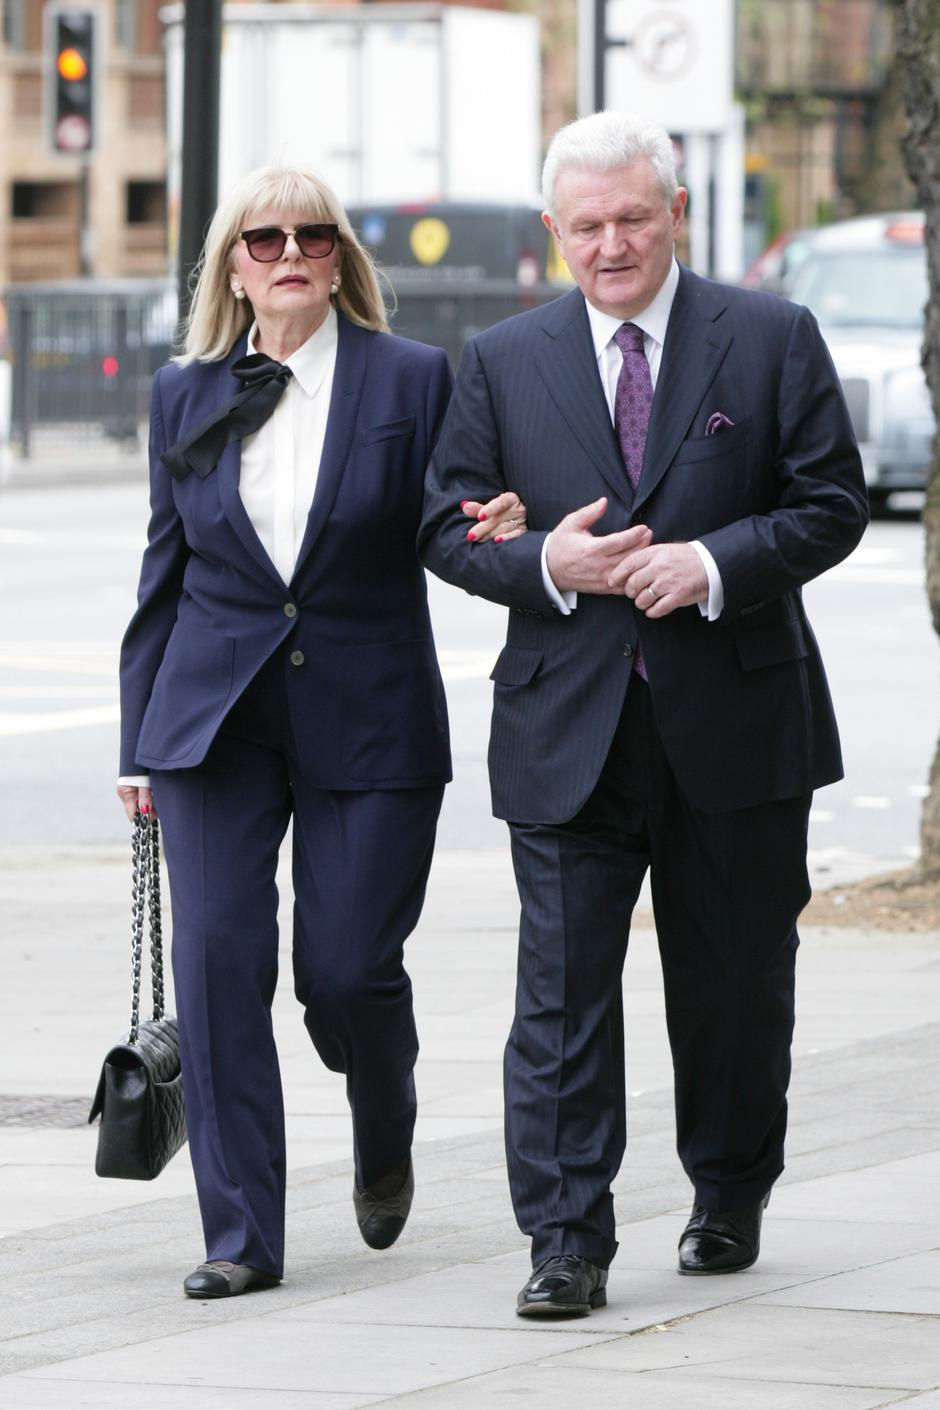 EXCLUSIVE Ivica Todoric and his wife Vesna Todoric are seen arriving at Westminster Magistrates Court in London today. A judge ruled today that the Agrokor founder is to be extradited back to Croatia. | Autor: Vantagenews.com/PIXSELL